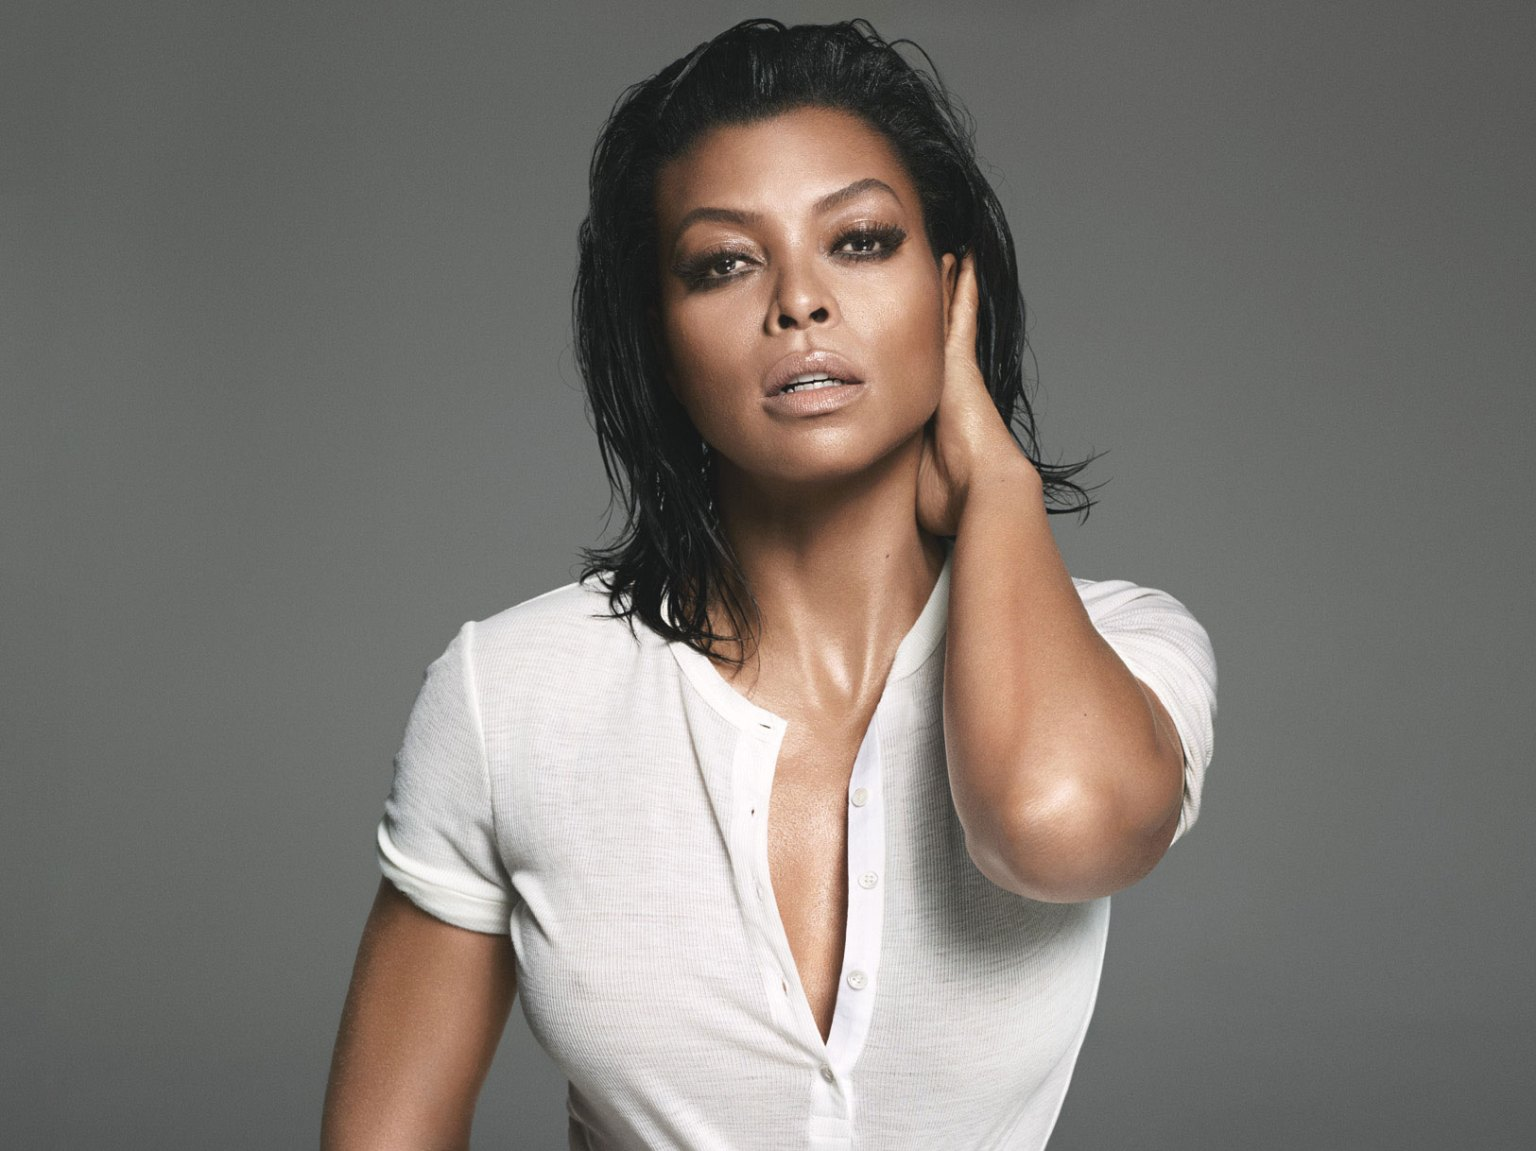 taraji-p-henson-gears-up-to-launch-a-new-talk-show-about-mental-health